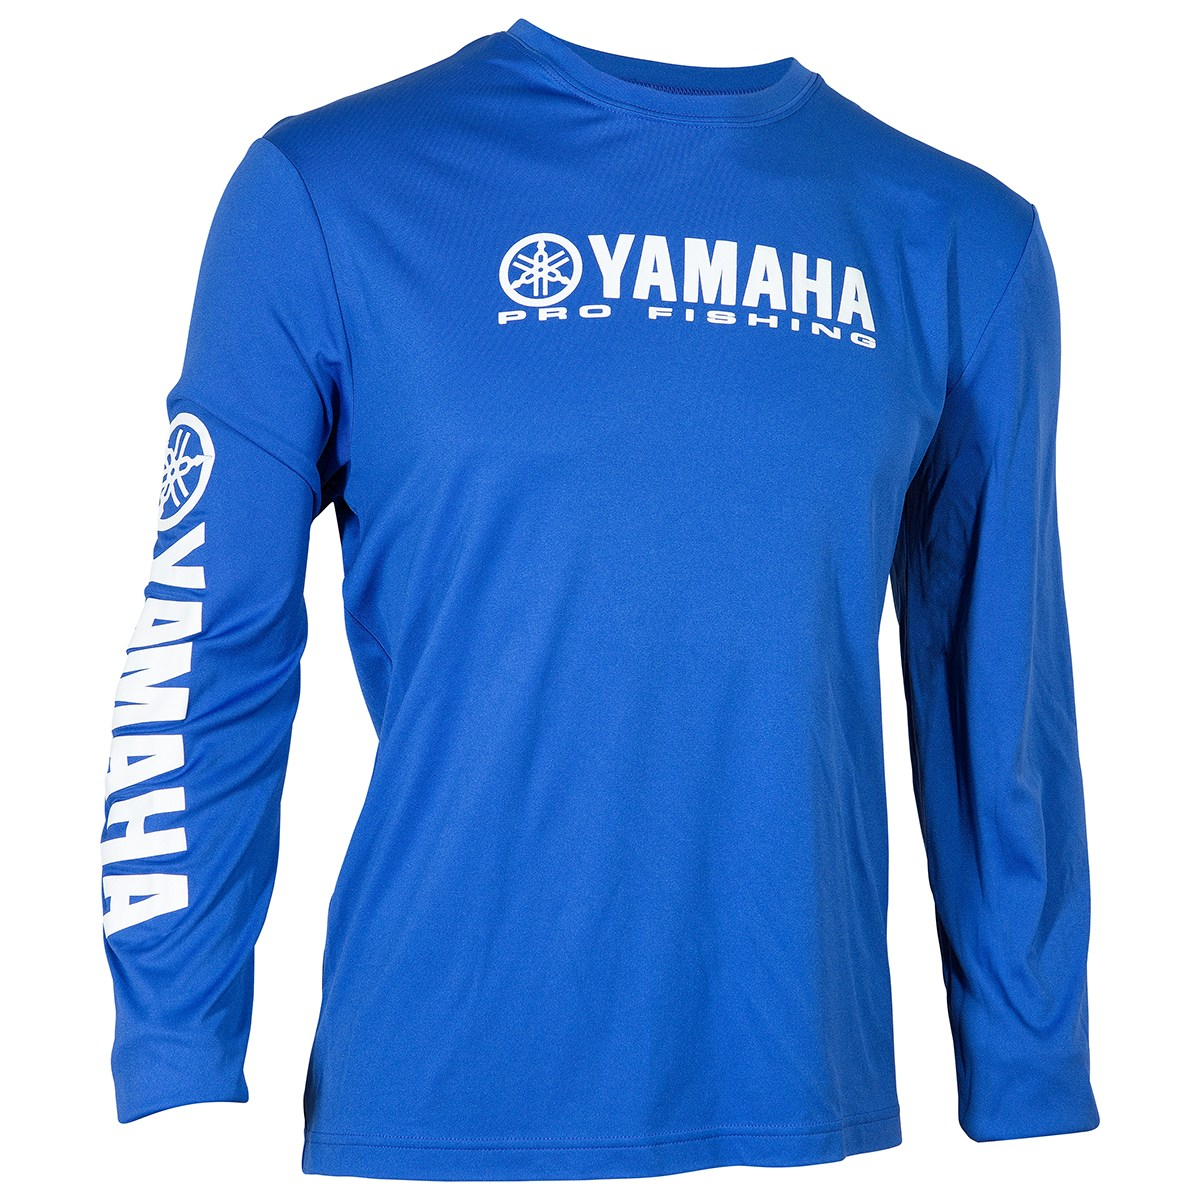 Product details for Yamaha outboard dealers near me